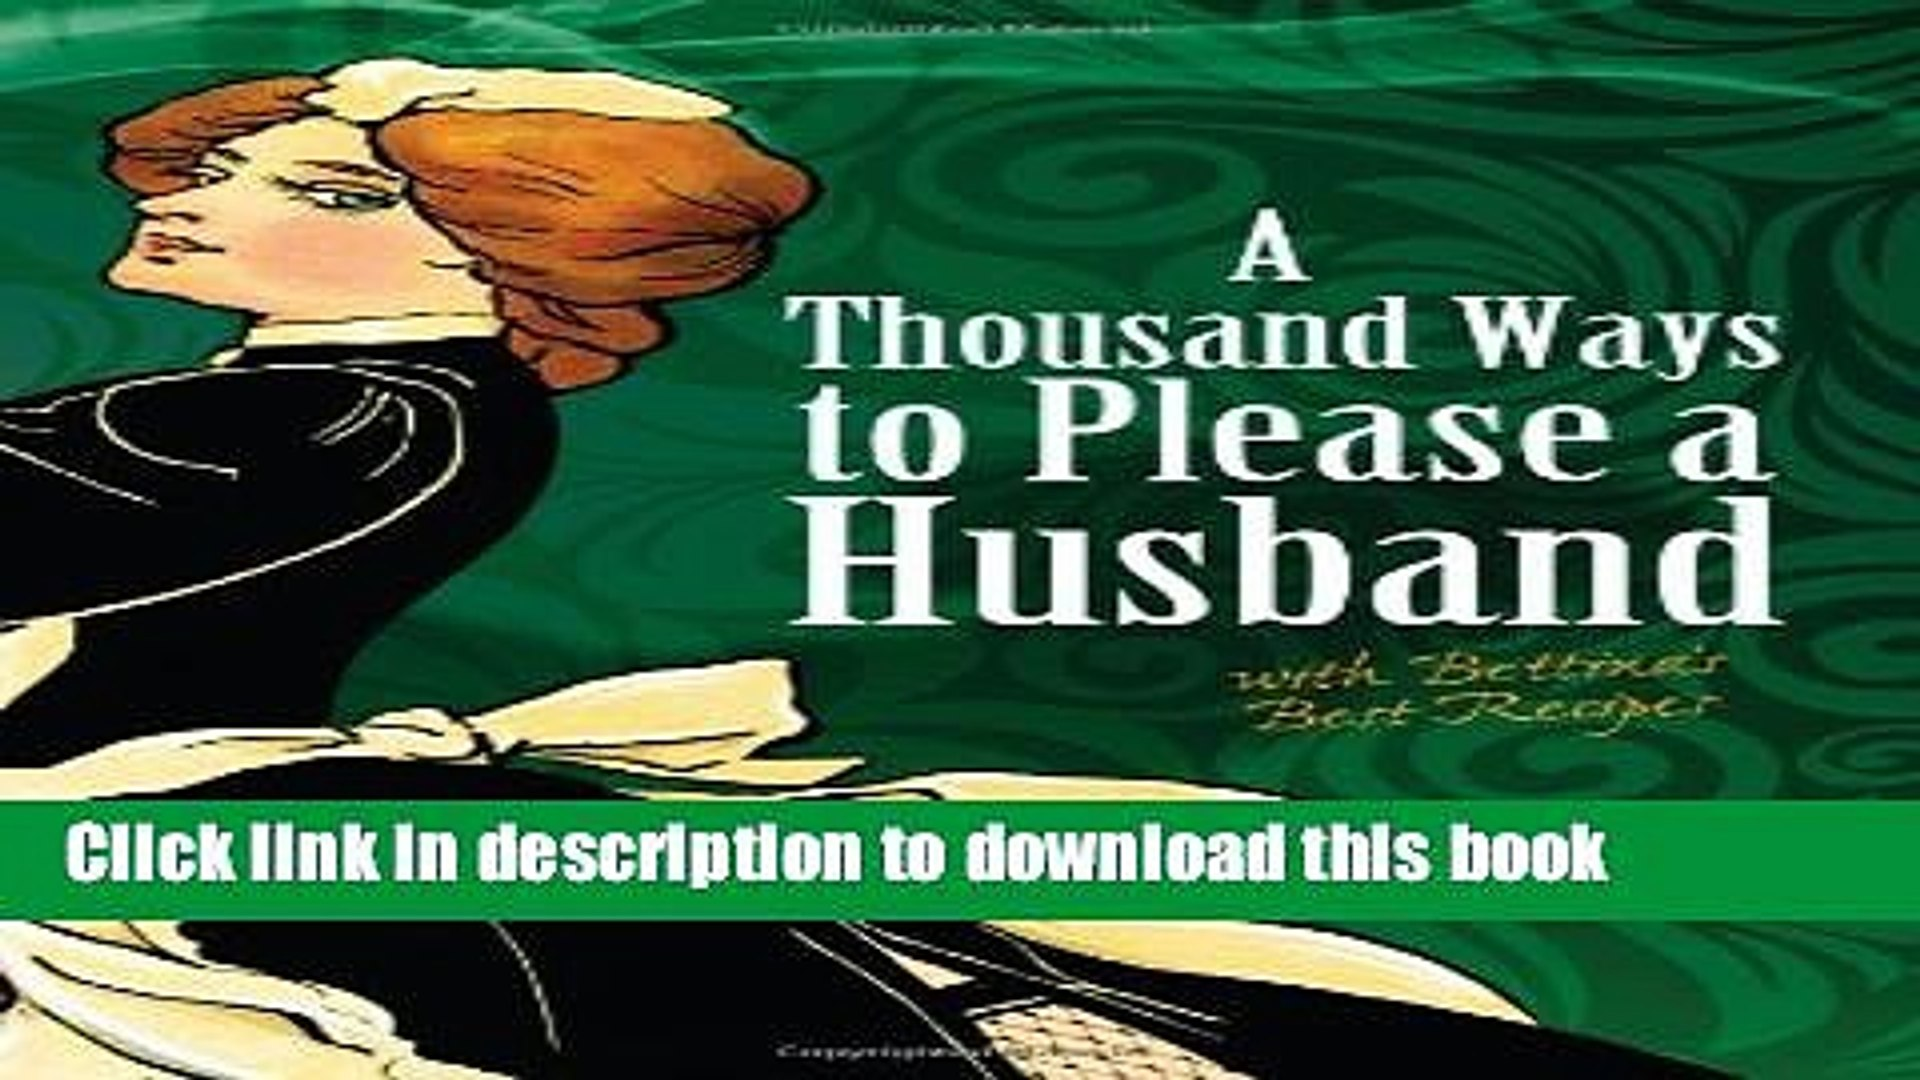 Ebook A Thousand Ways to Please a Husband: With Bettina s Best Recipes Full Online